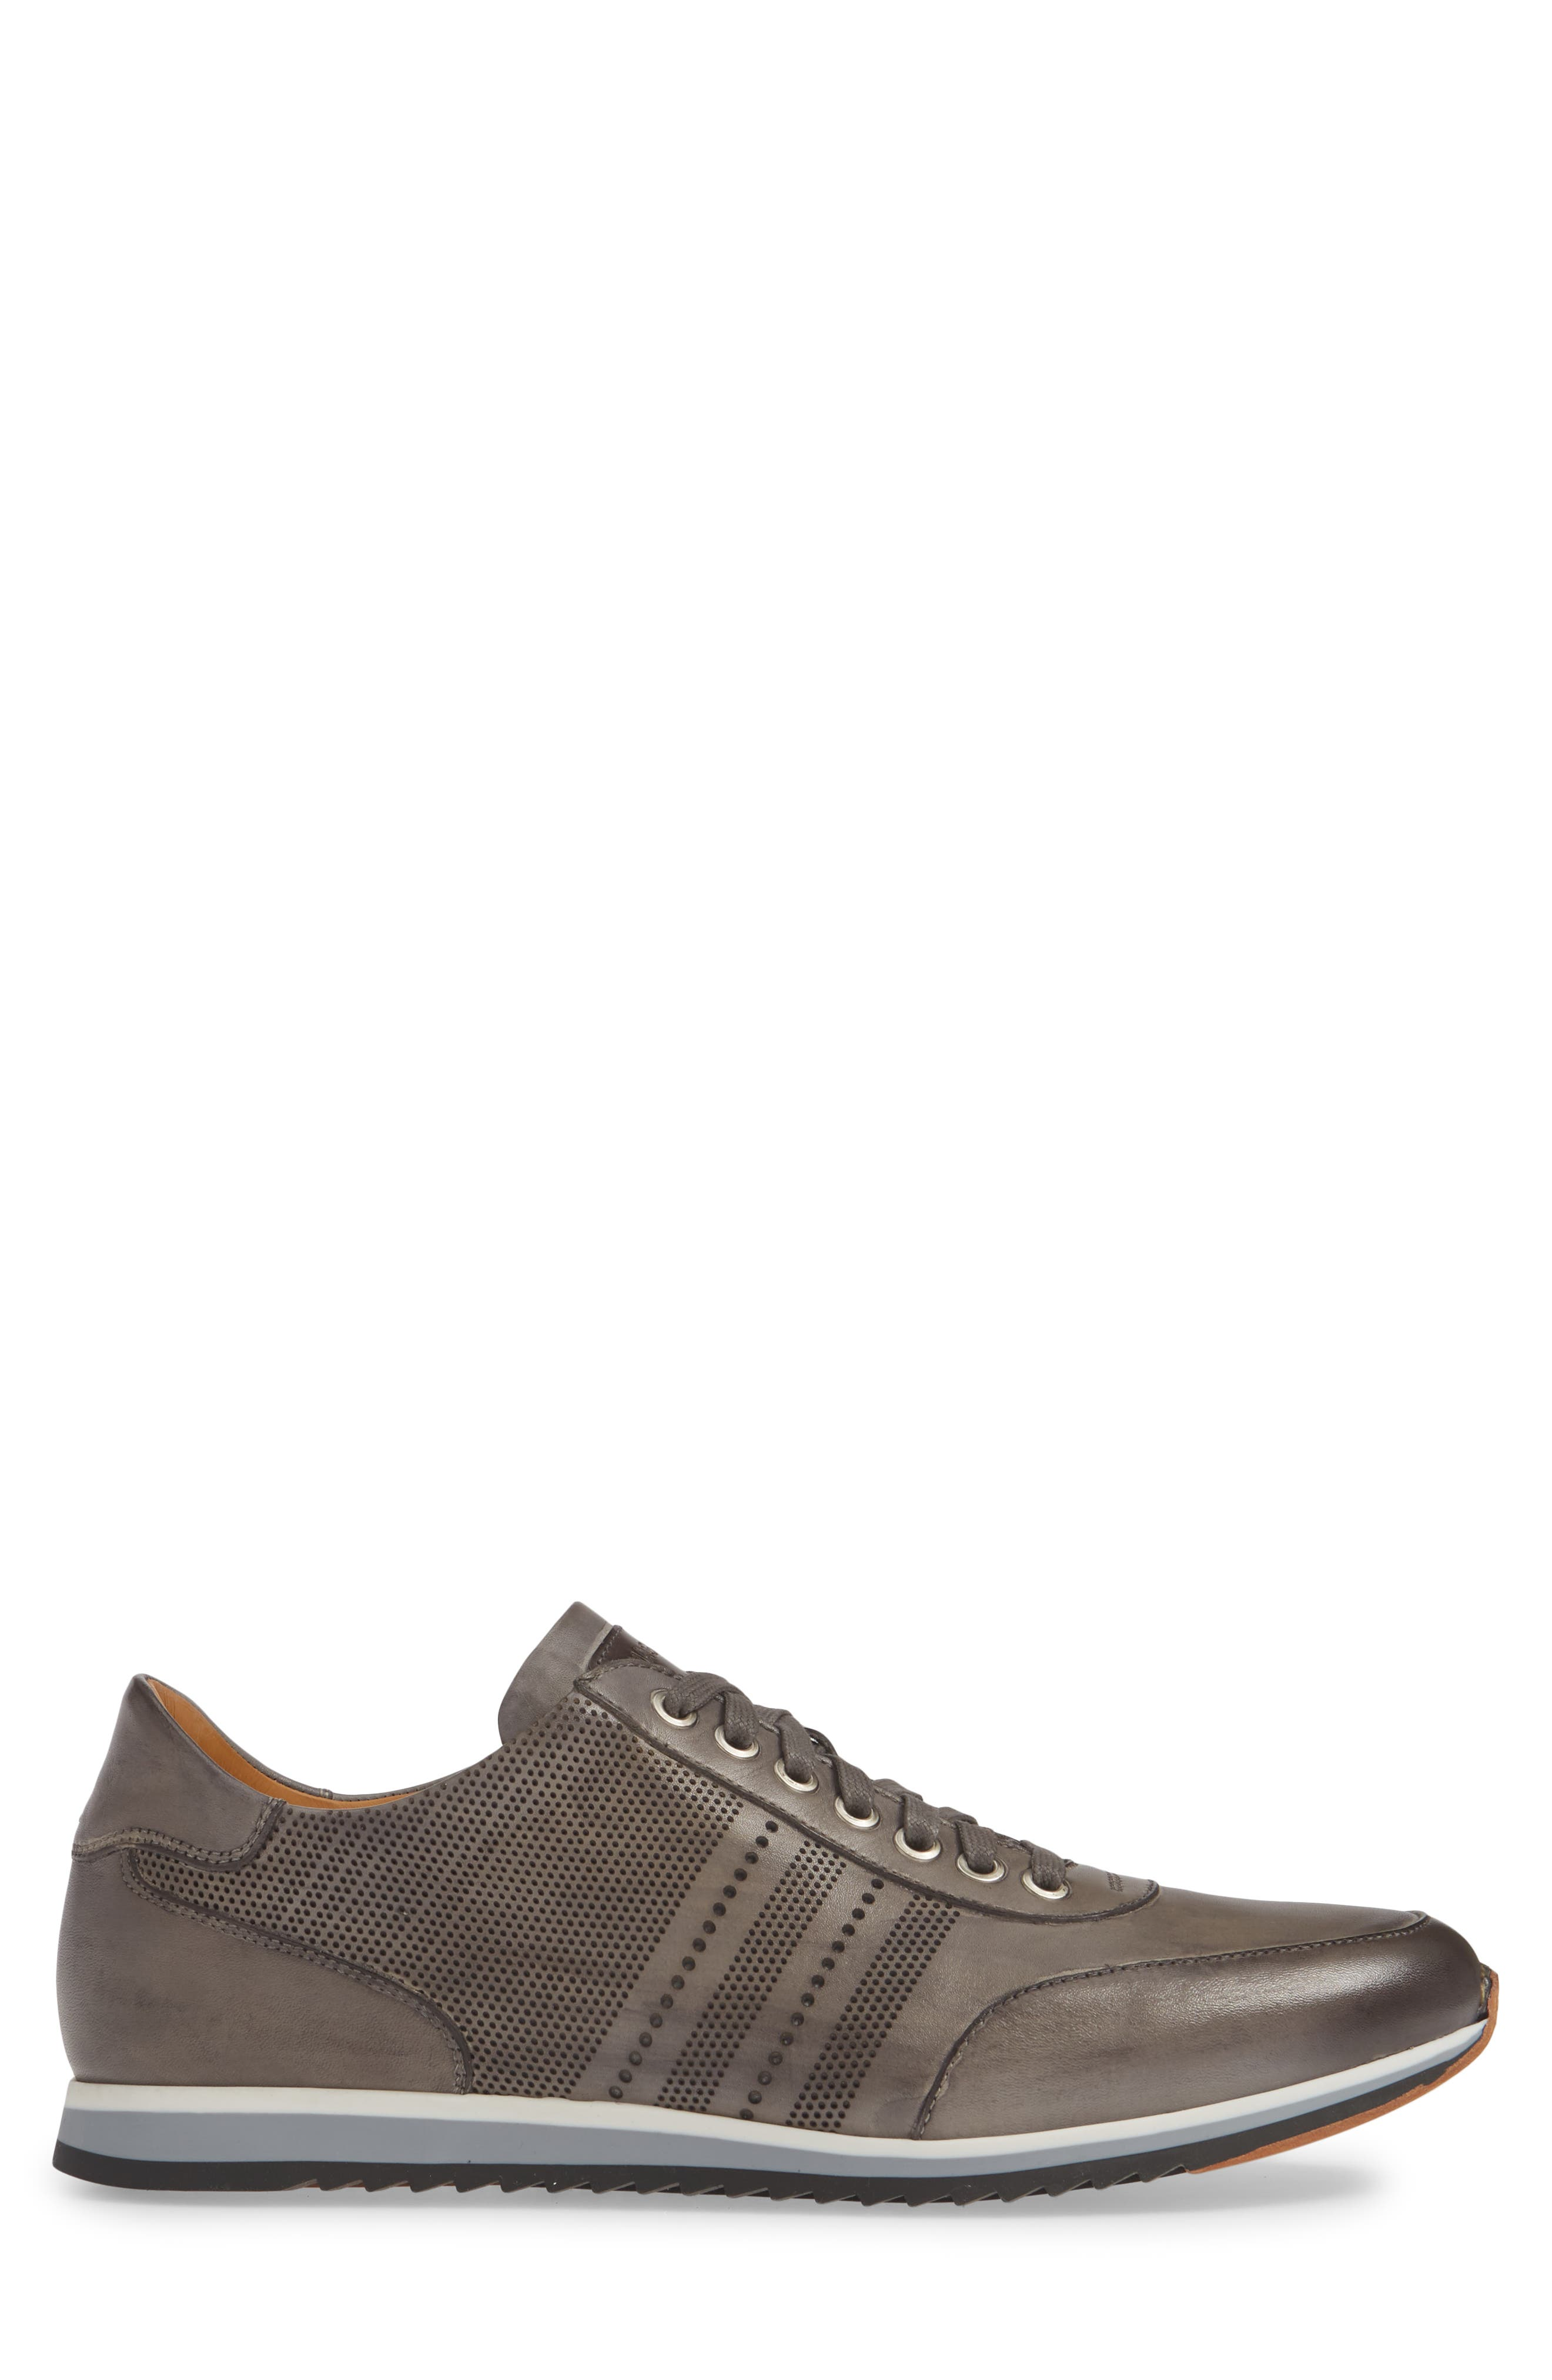 MAGNANNI, Merino Sneaker, Alternate thumbnail 3, color, GREY LEATHER